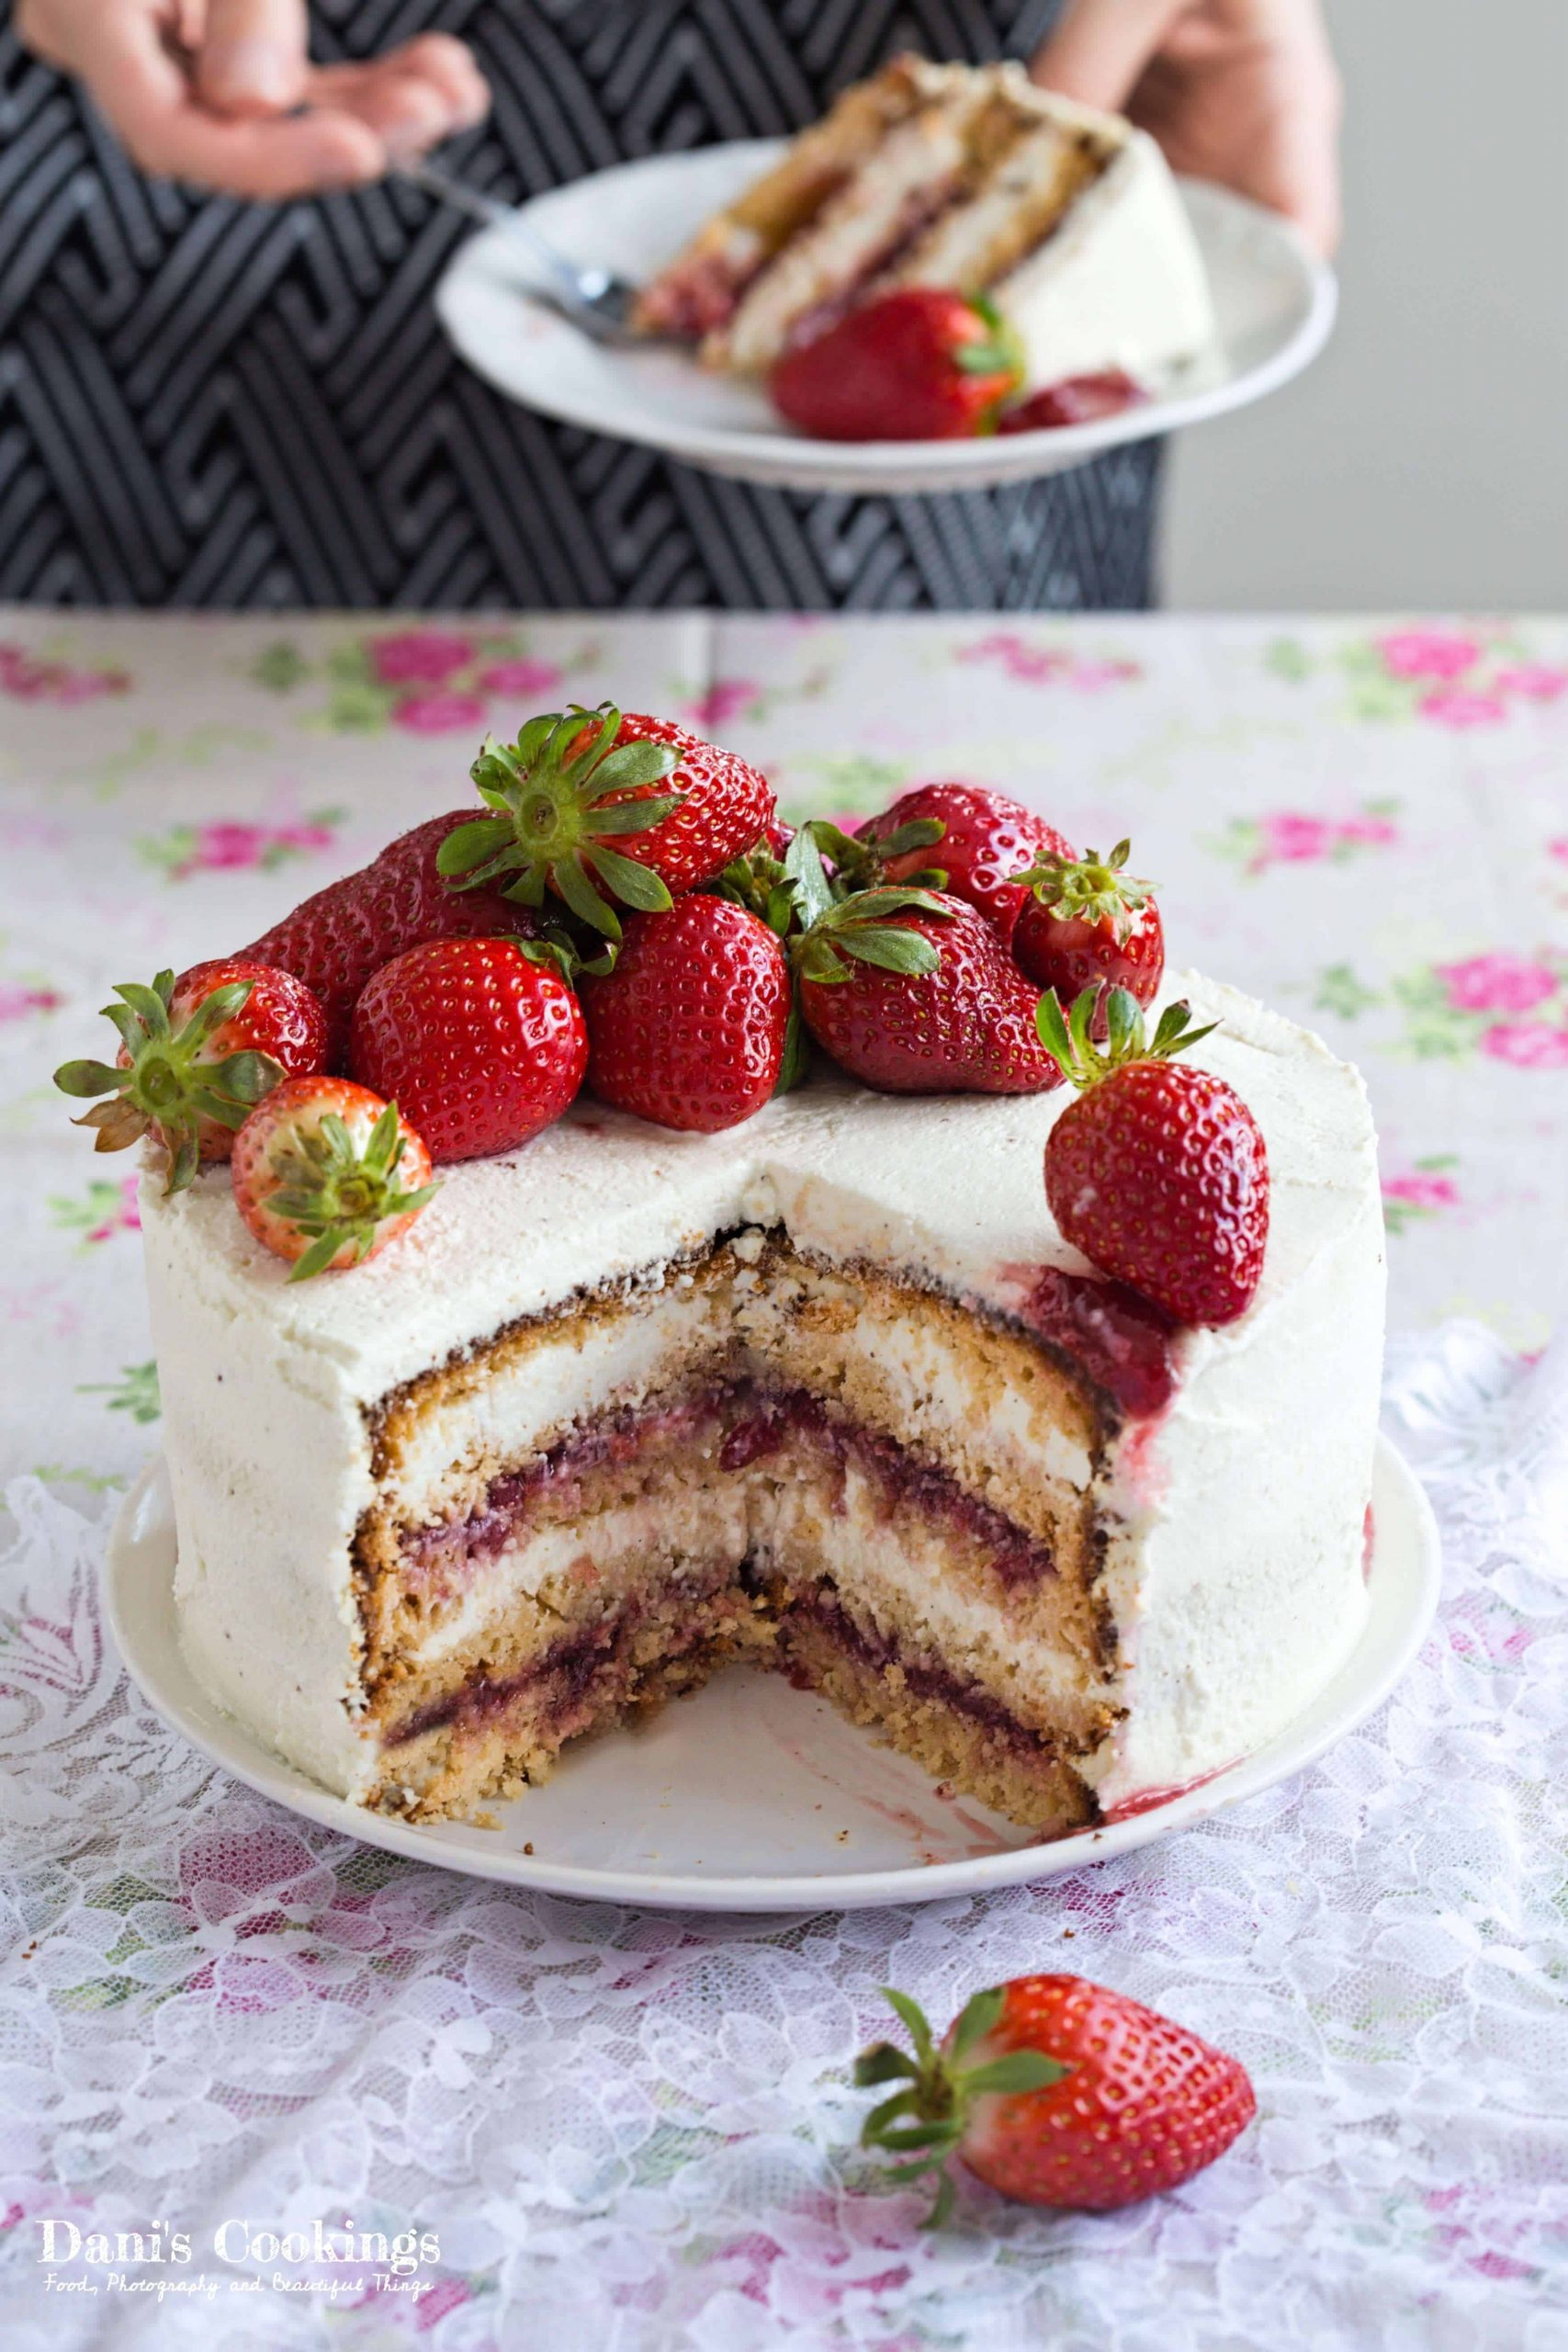 a woman eating a slice of cake behind the whole cake